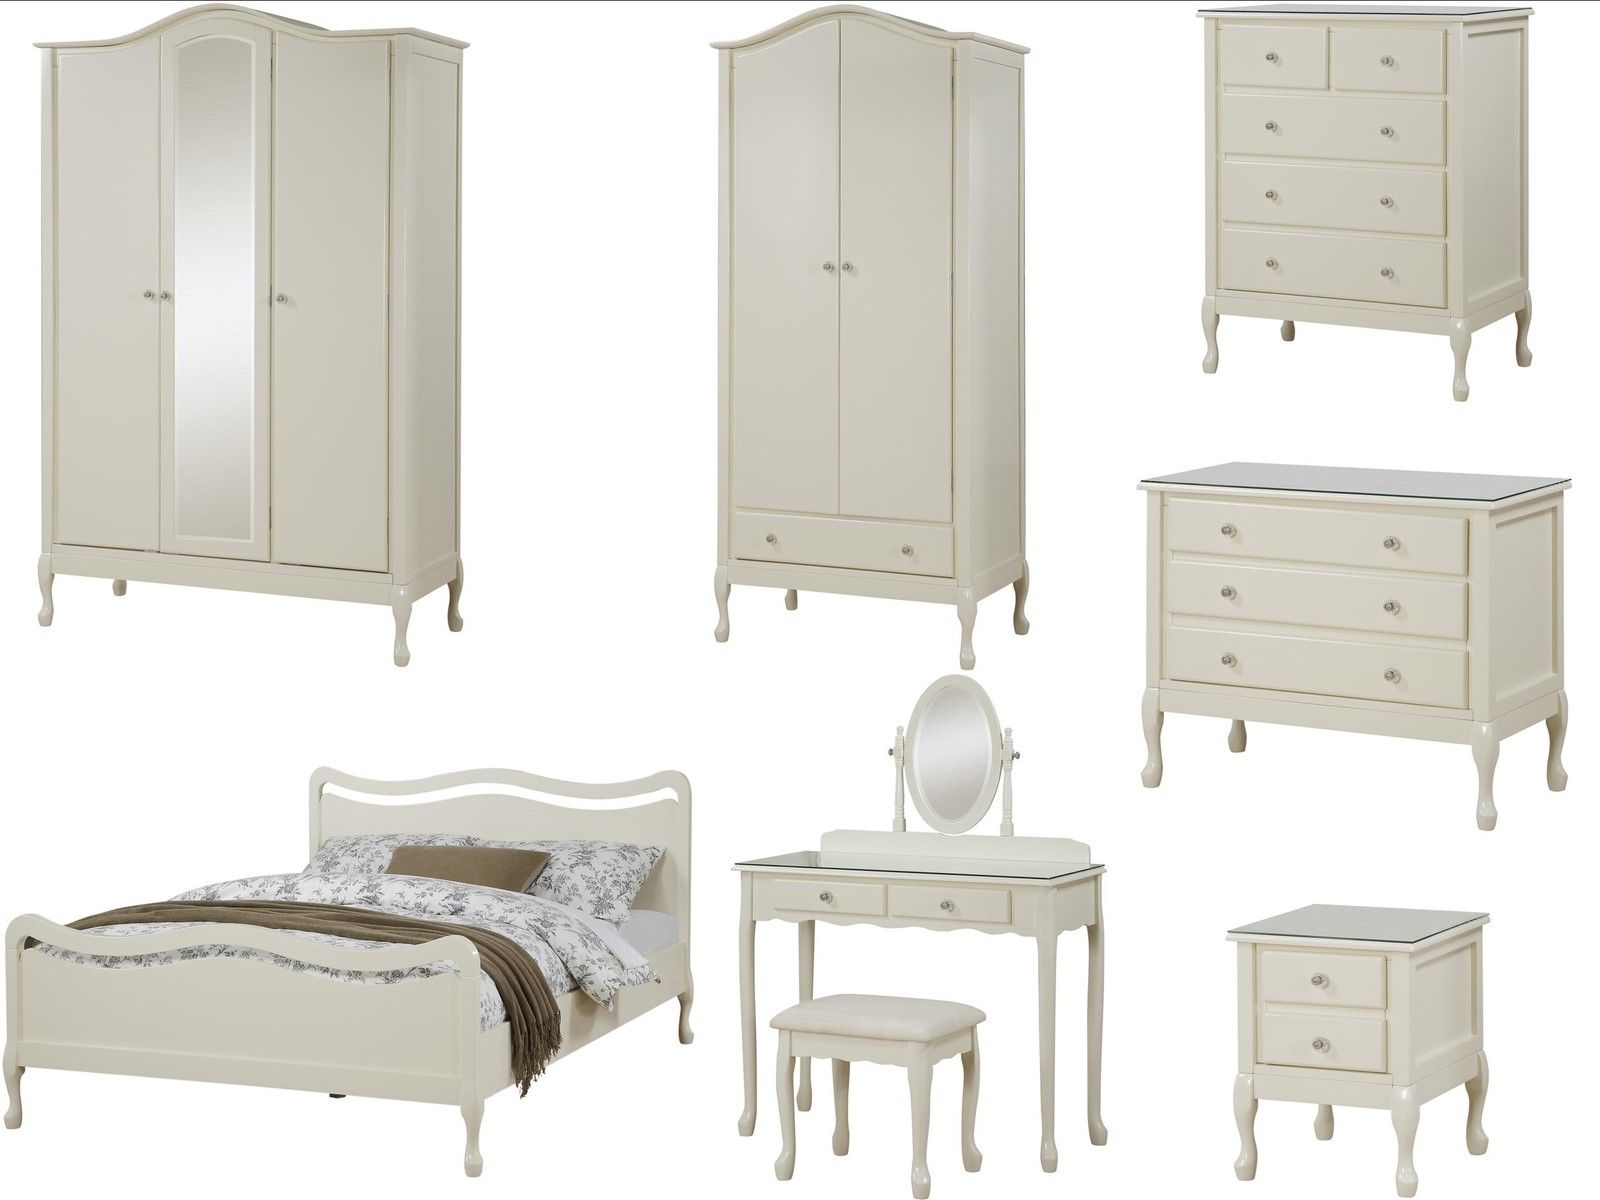 Loire shabby chic ivory bedroom furniture wardrobe for Shabby chic furniture